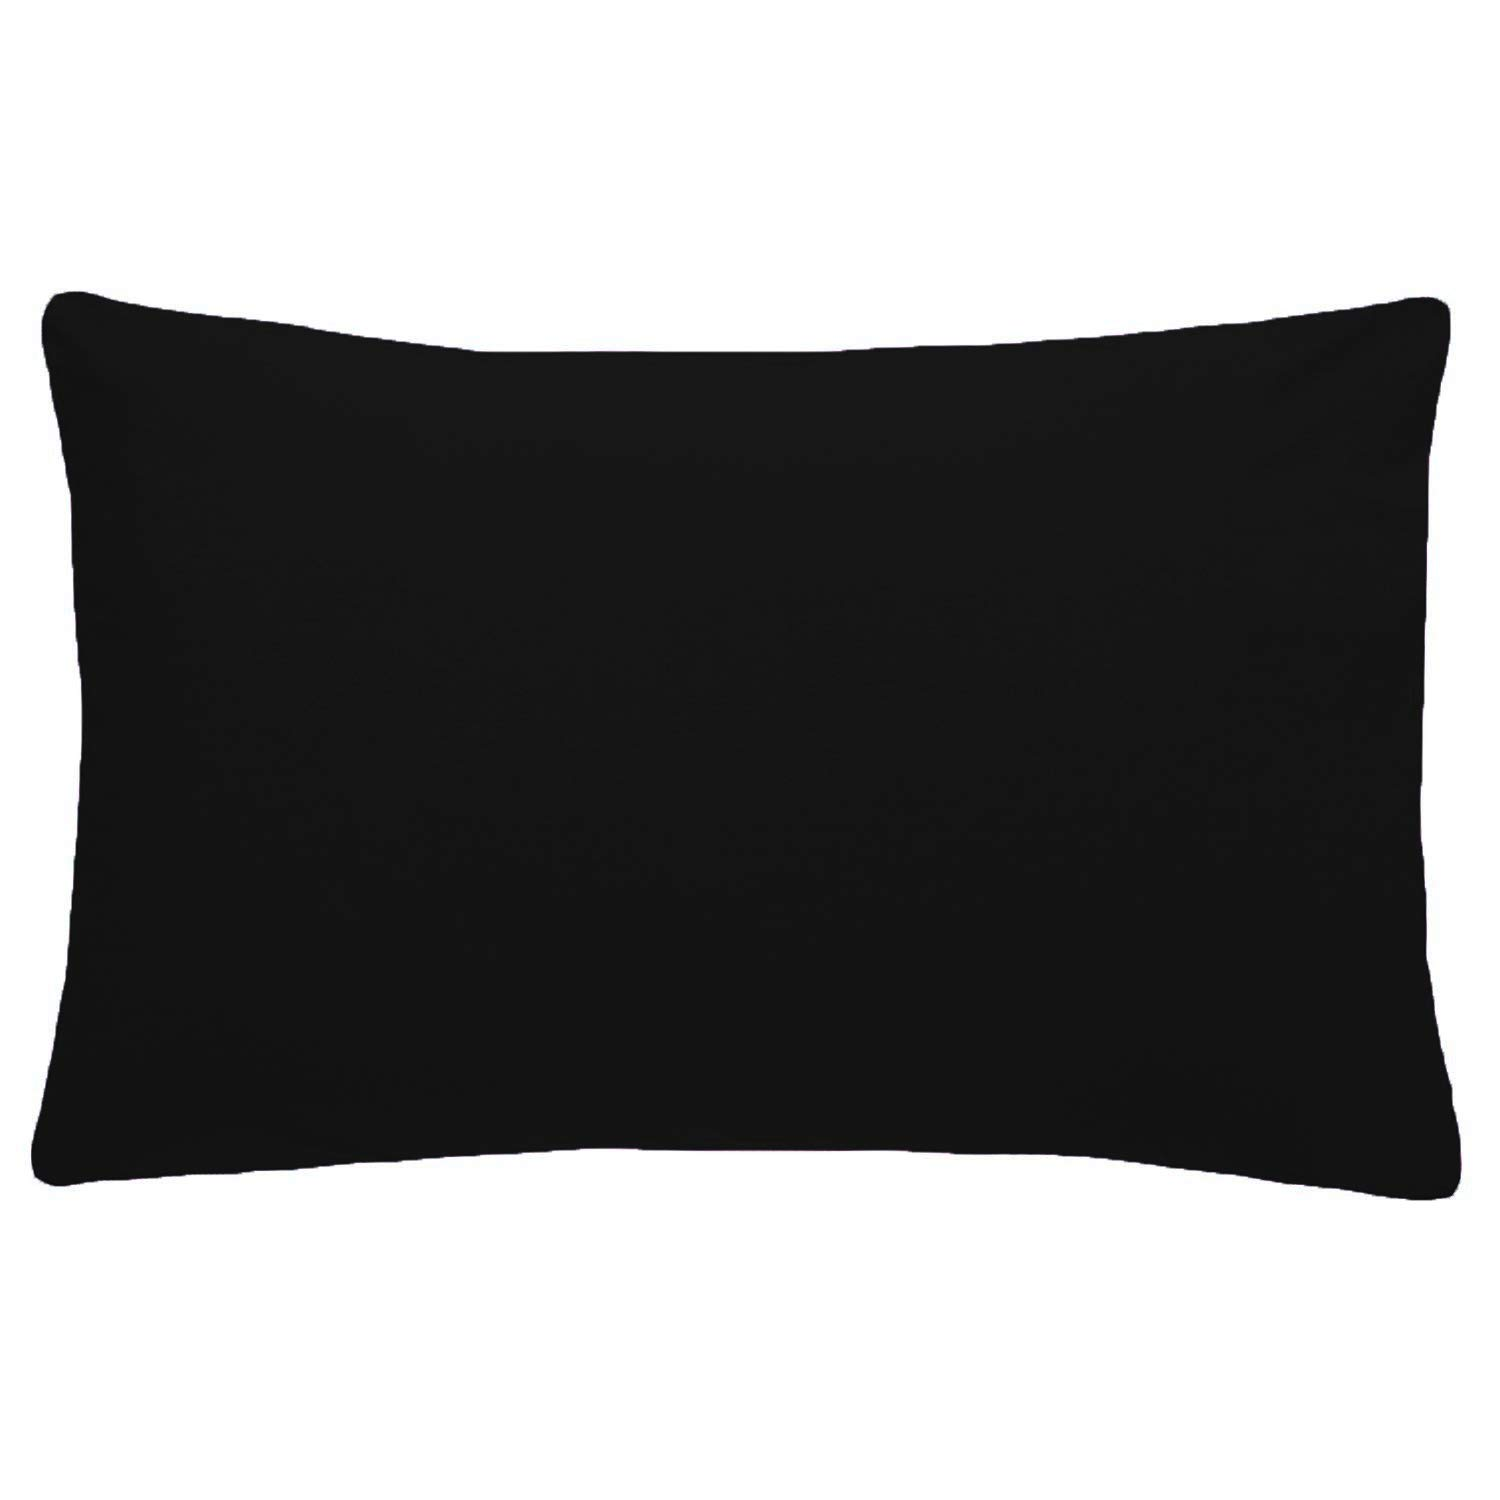 Comfy Nights PolyCotton Plain Dyed Flat Sheet Or Pillow Pair, Double - Black Home Tex Ent